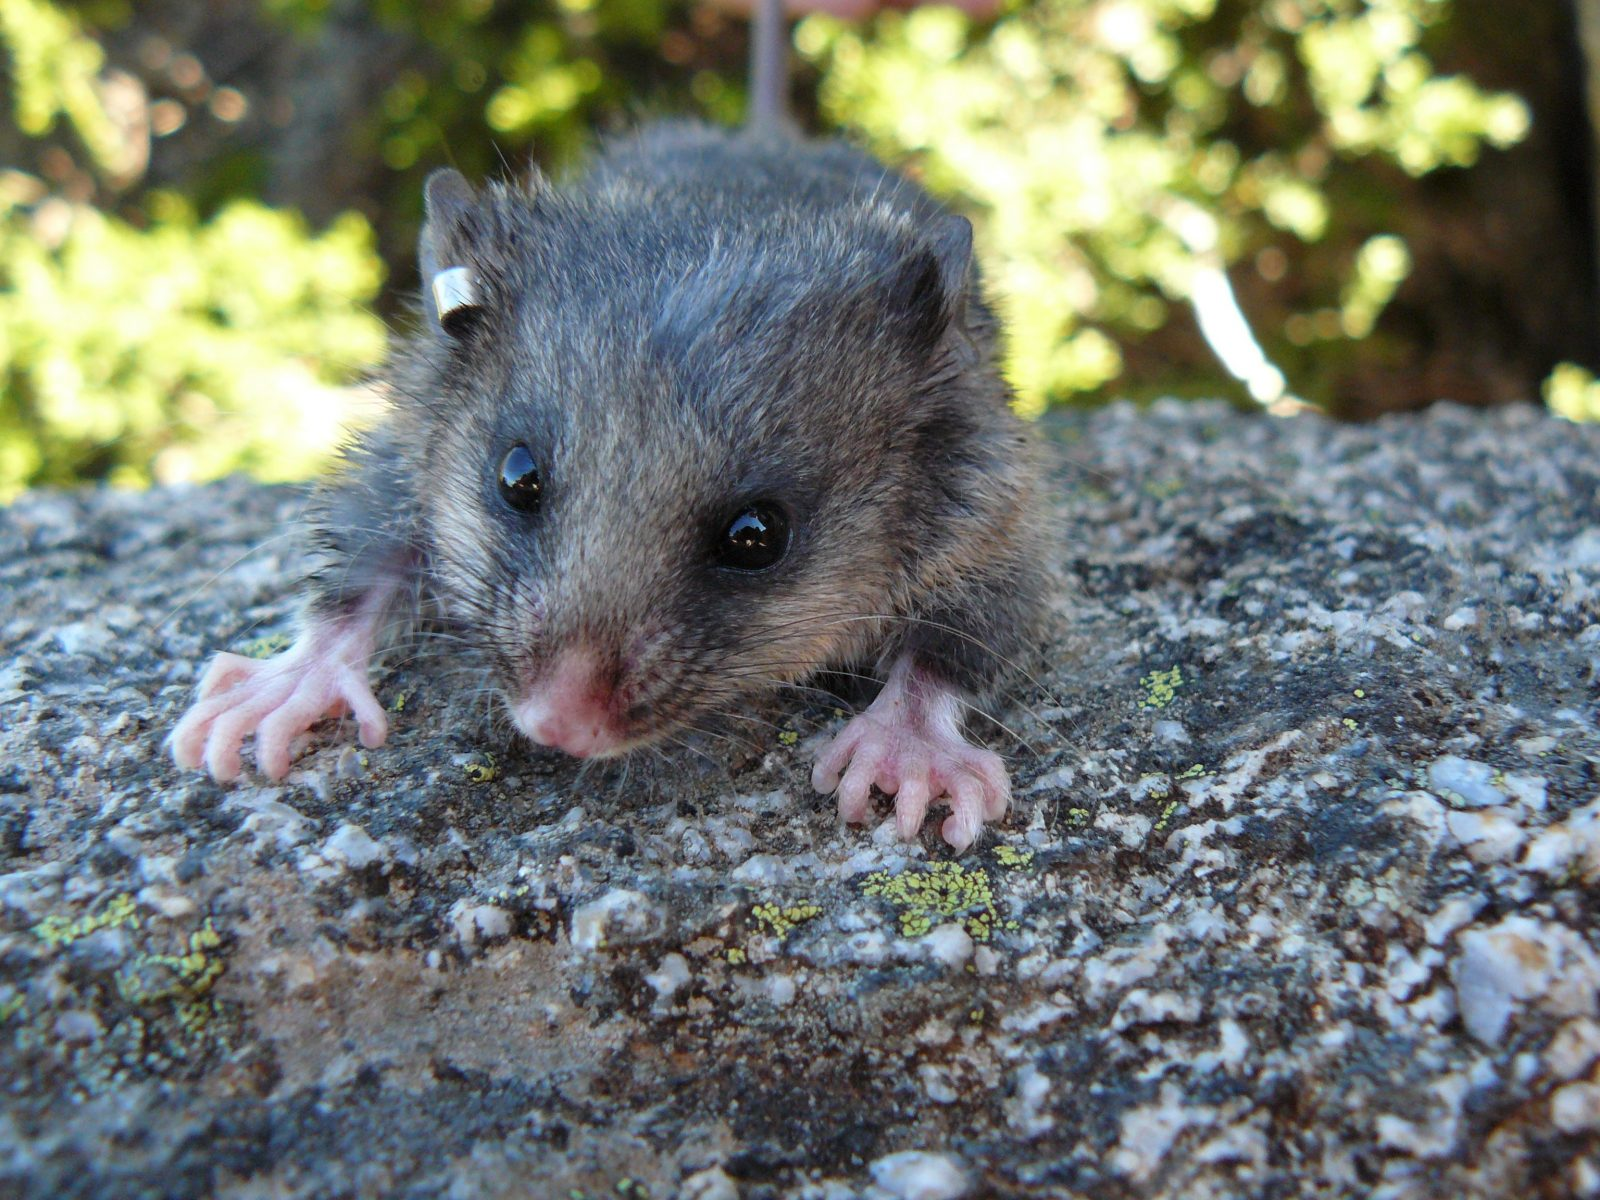 Mountain pygmy-possum with tagged ear